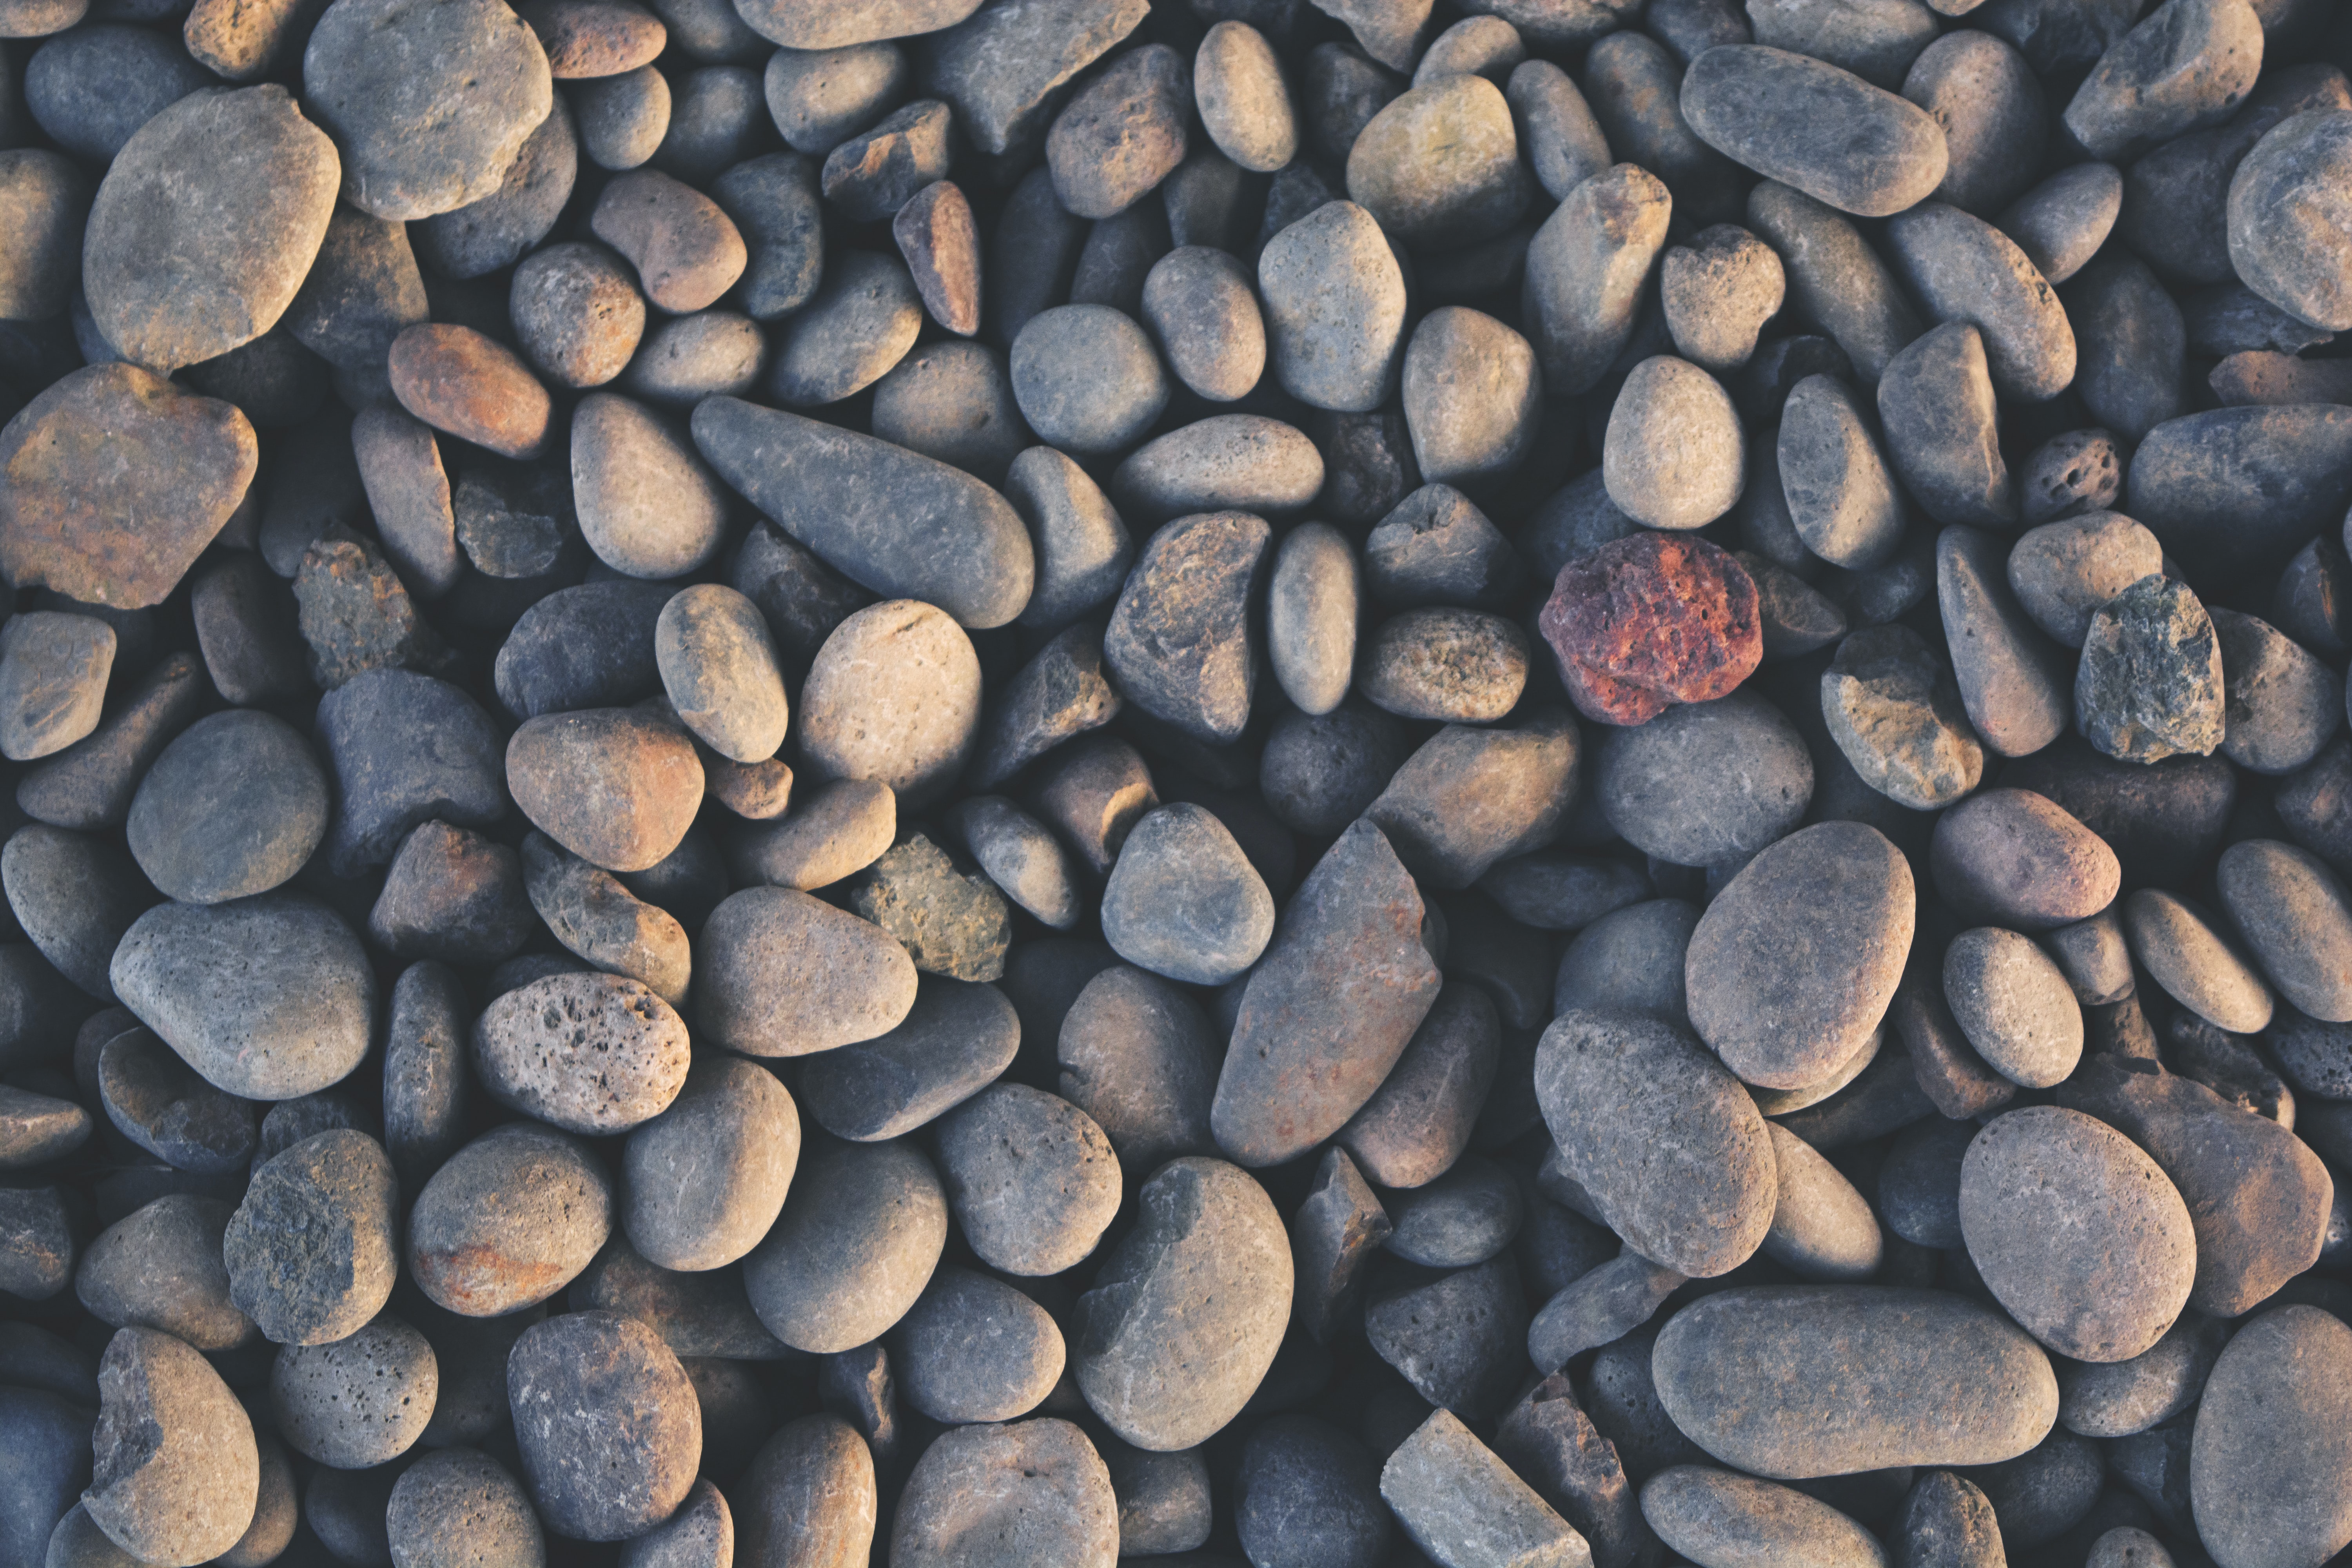 A top view of a layer of rounded pebbles